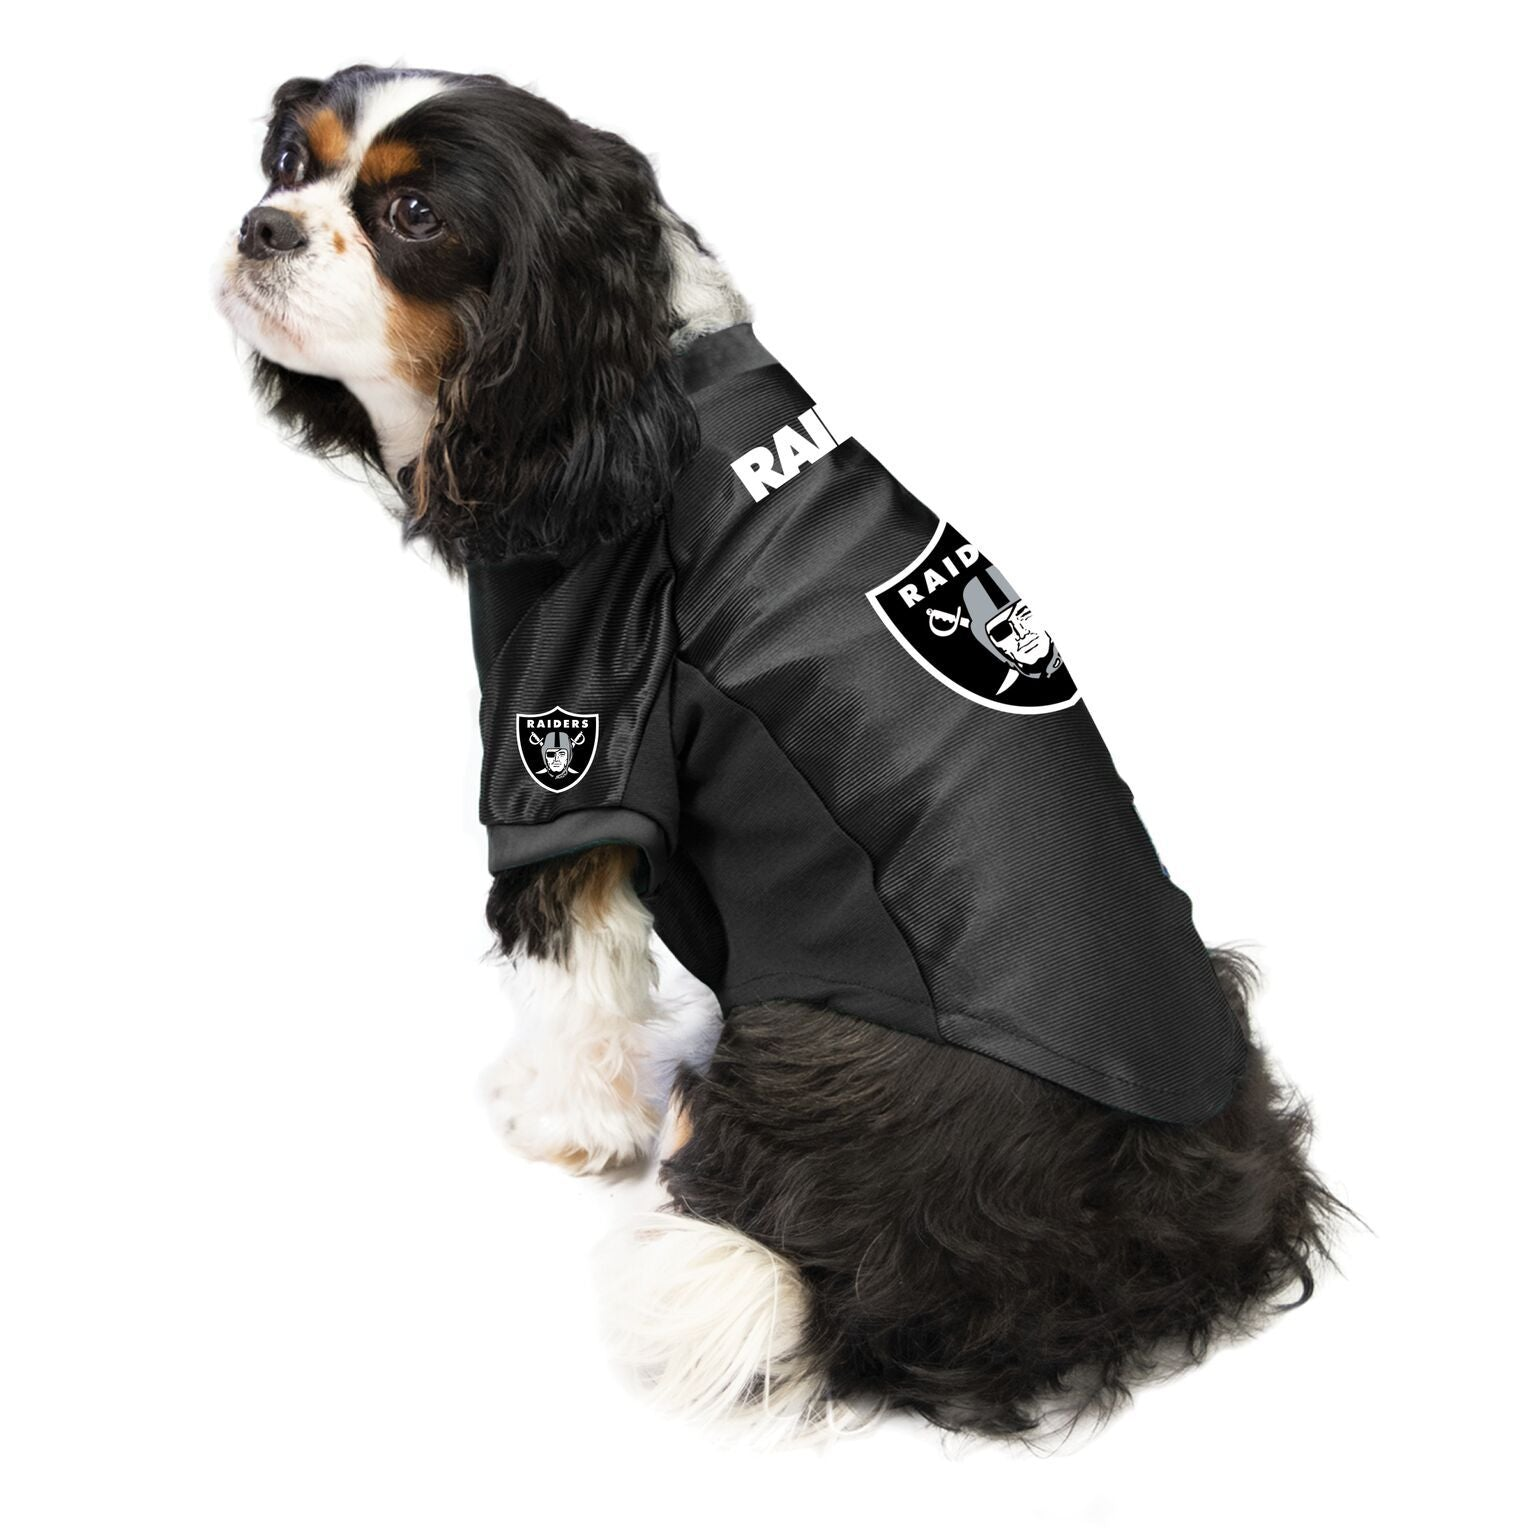 Raiders Outfit for Dogs